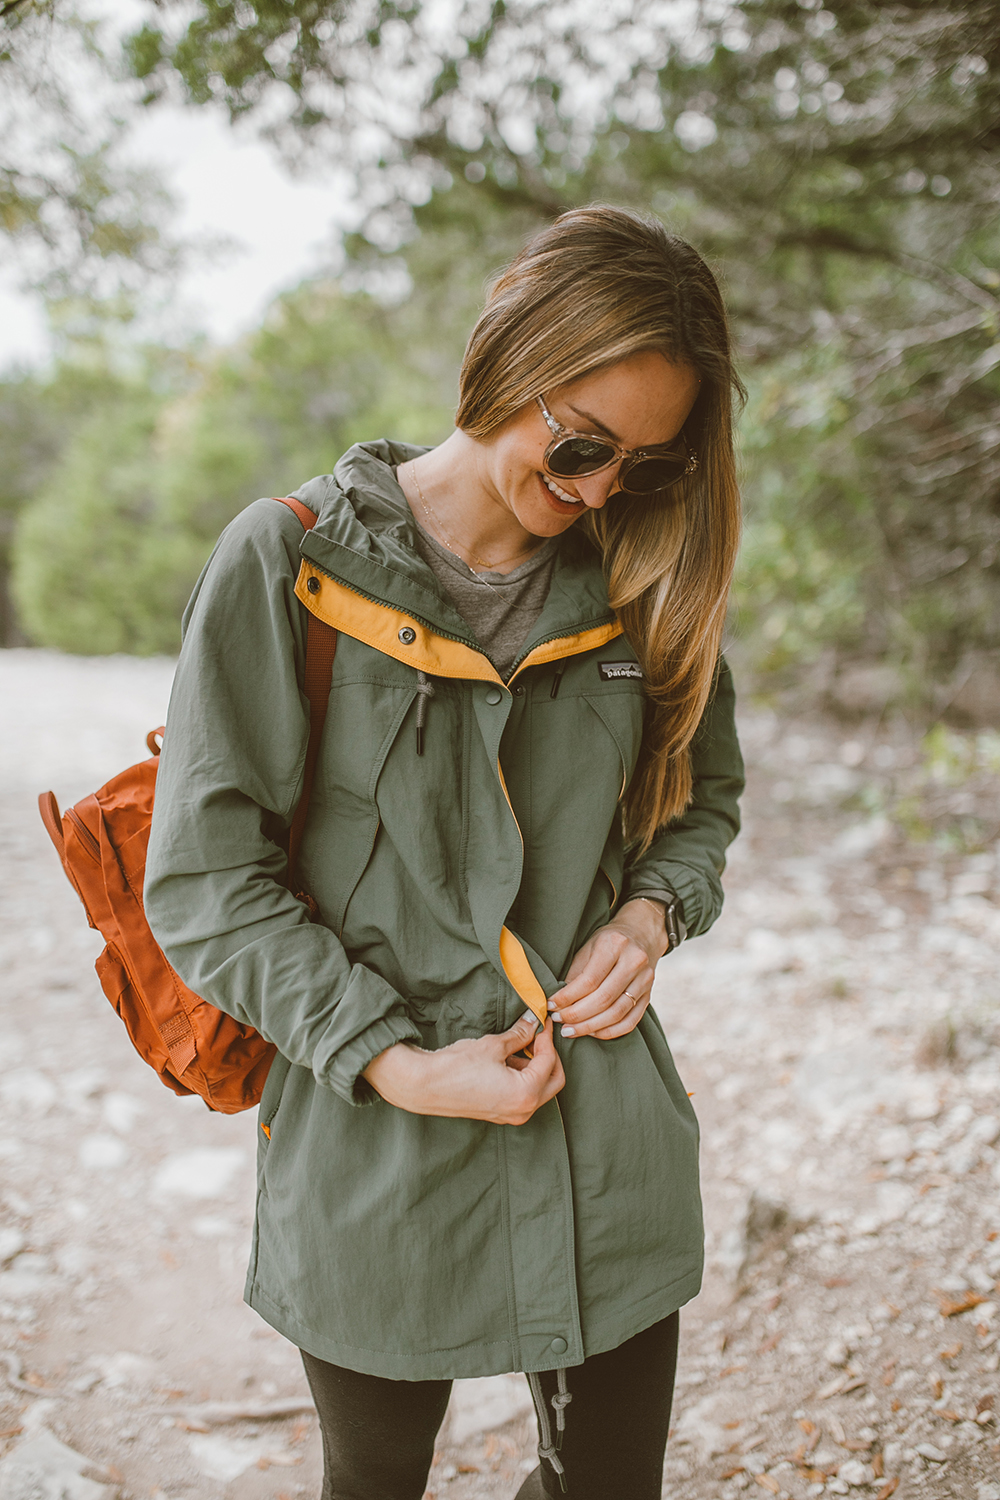 livvyland-blog-olivia-watson-austin-texas-greenbelt-hike-nature-walk-patagonia-skyforest-green-parka-3